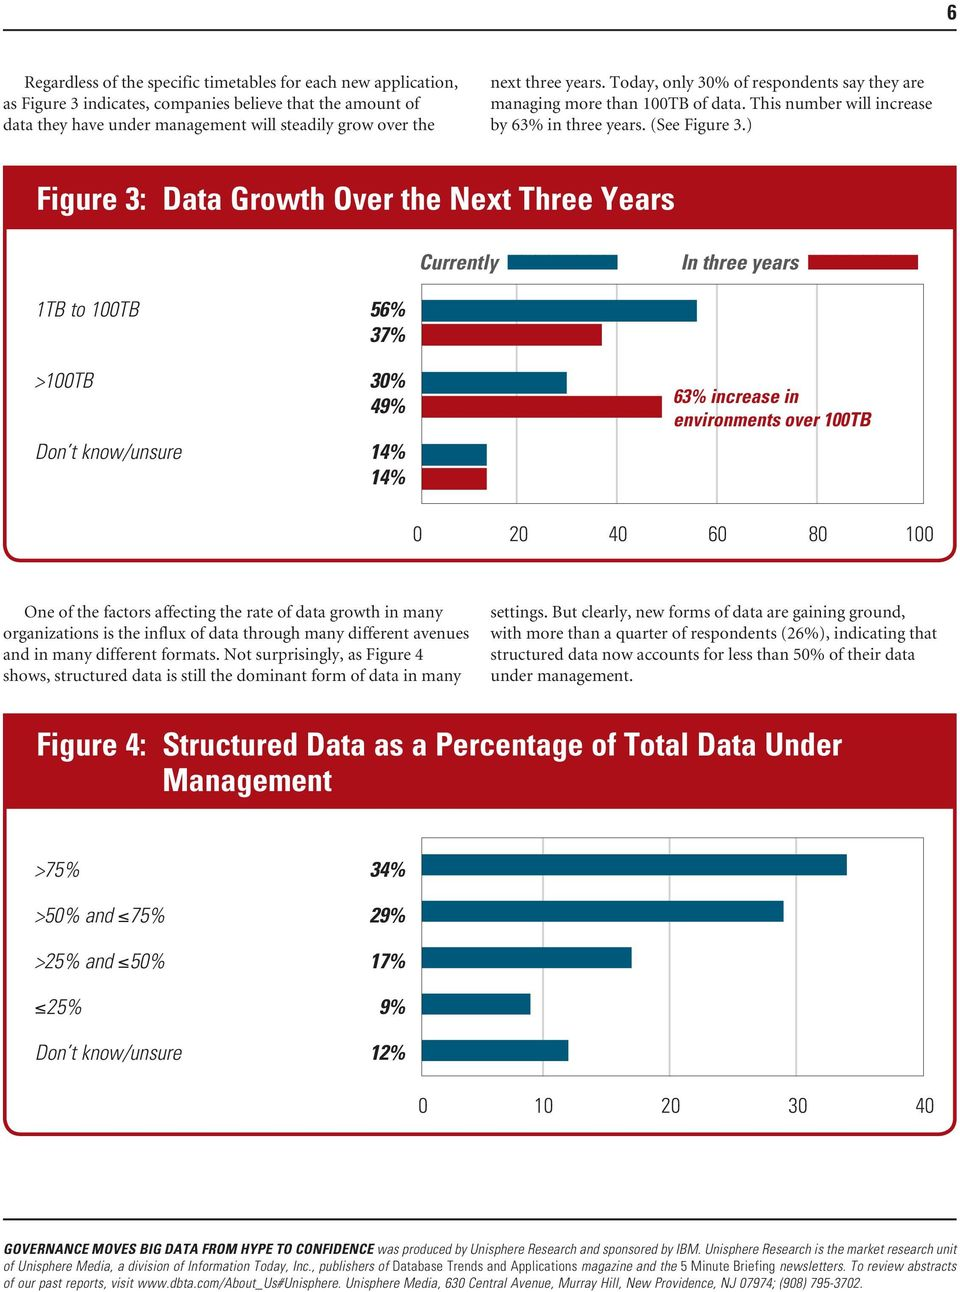 ) Figure 3: Data Growth Over the Next Three Years Currently nnnnnnnn In three years nnnnnnnn 1TB to 100TB 56% 37% >100TB 30% 49% Don t know/unsure 14% 14% 63% increase in environments over 100TB 0 20